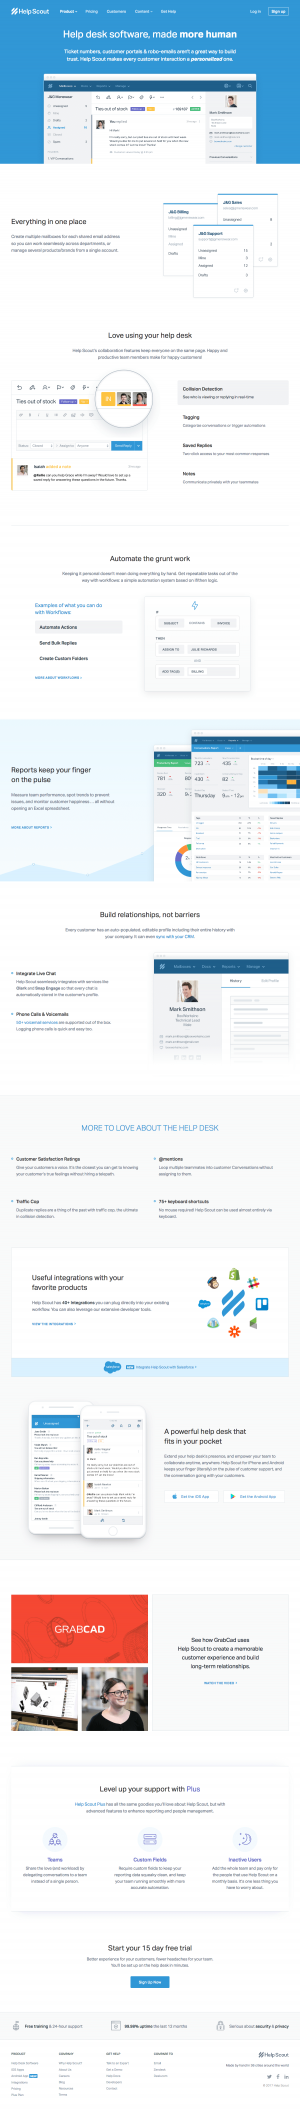 Features page inspiration - saas Help Scout